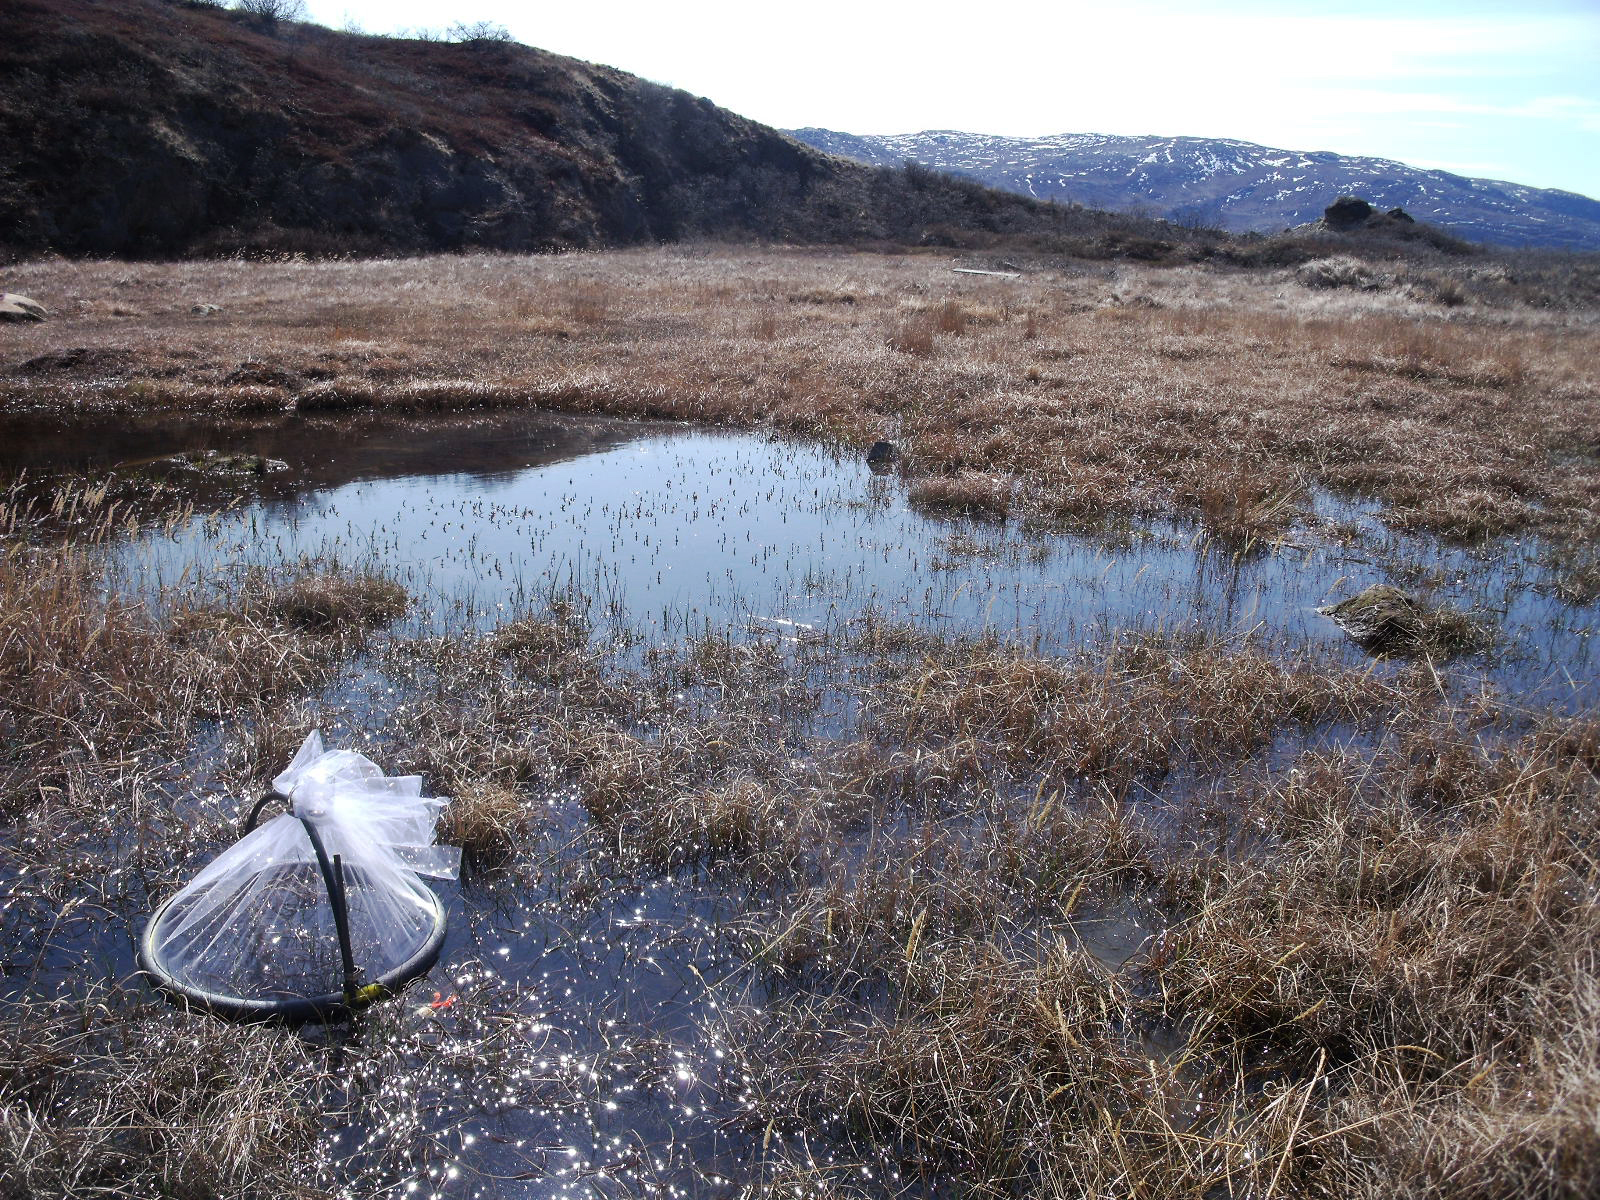 A trap captures mosquitoes from a Greenland pond. Photo: Lauren Culler